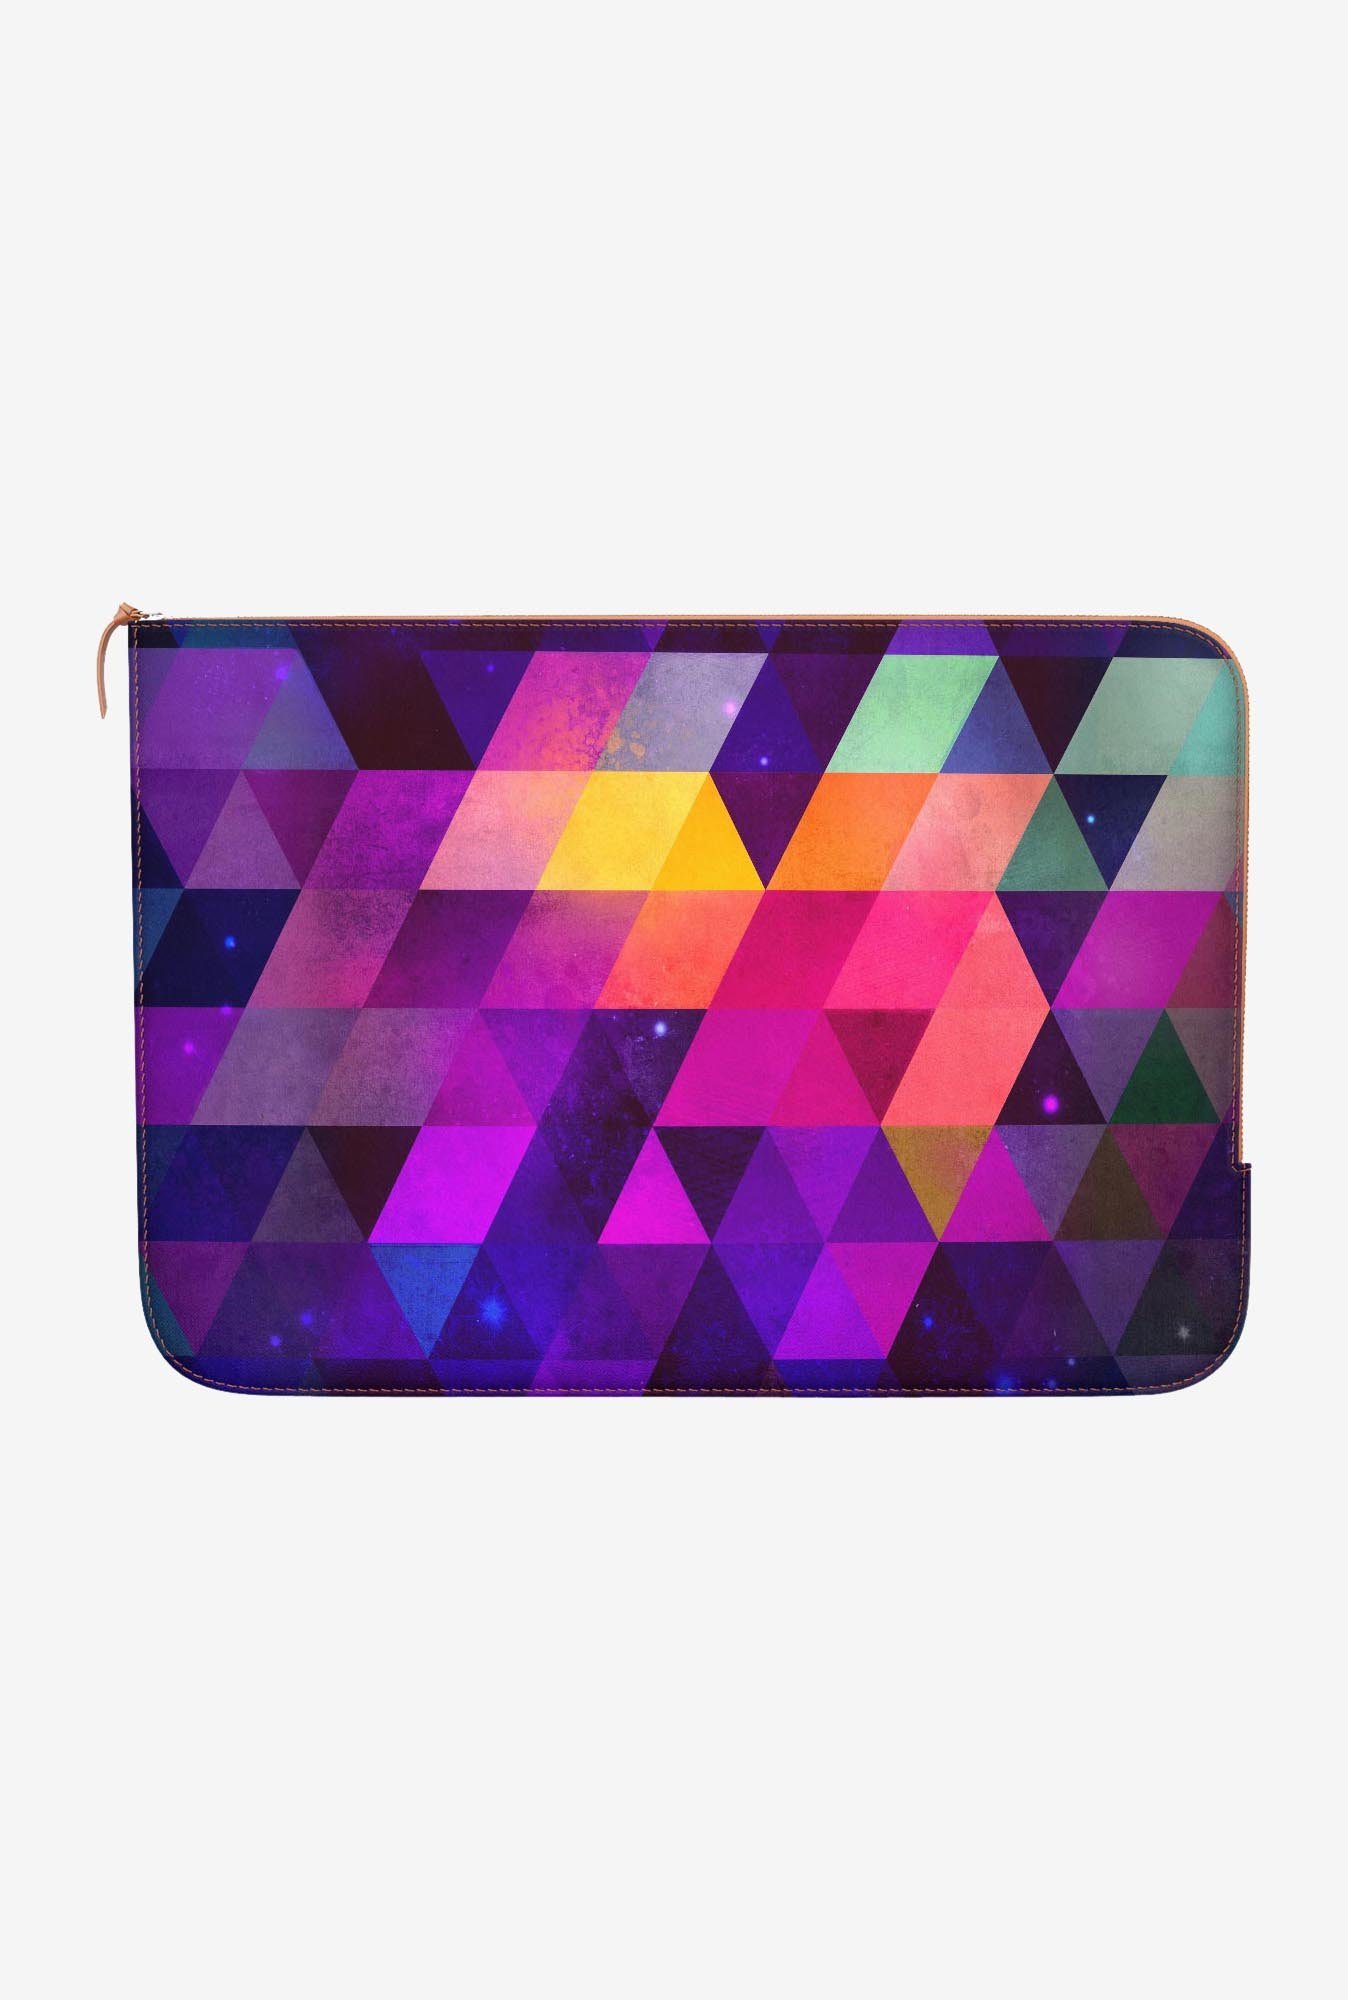 DailyObjects Vyolyt Hrxtl MacBook Pro 13 Zippered Sleeve